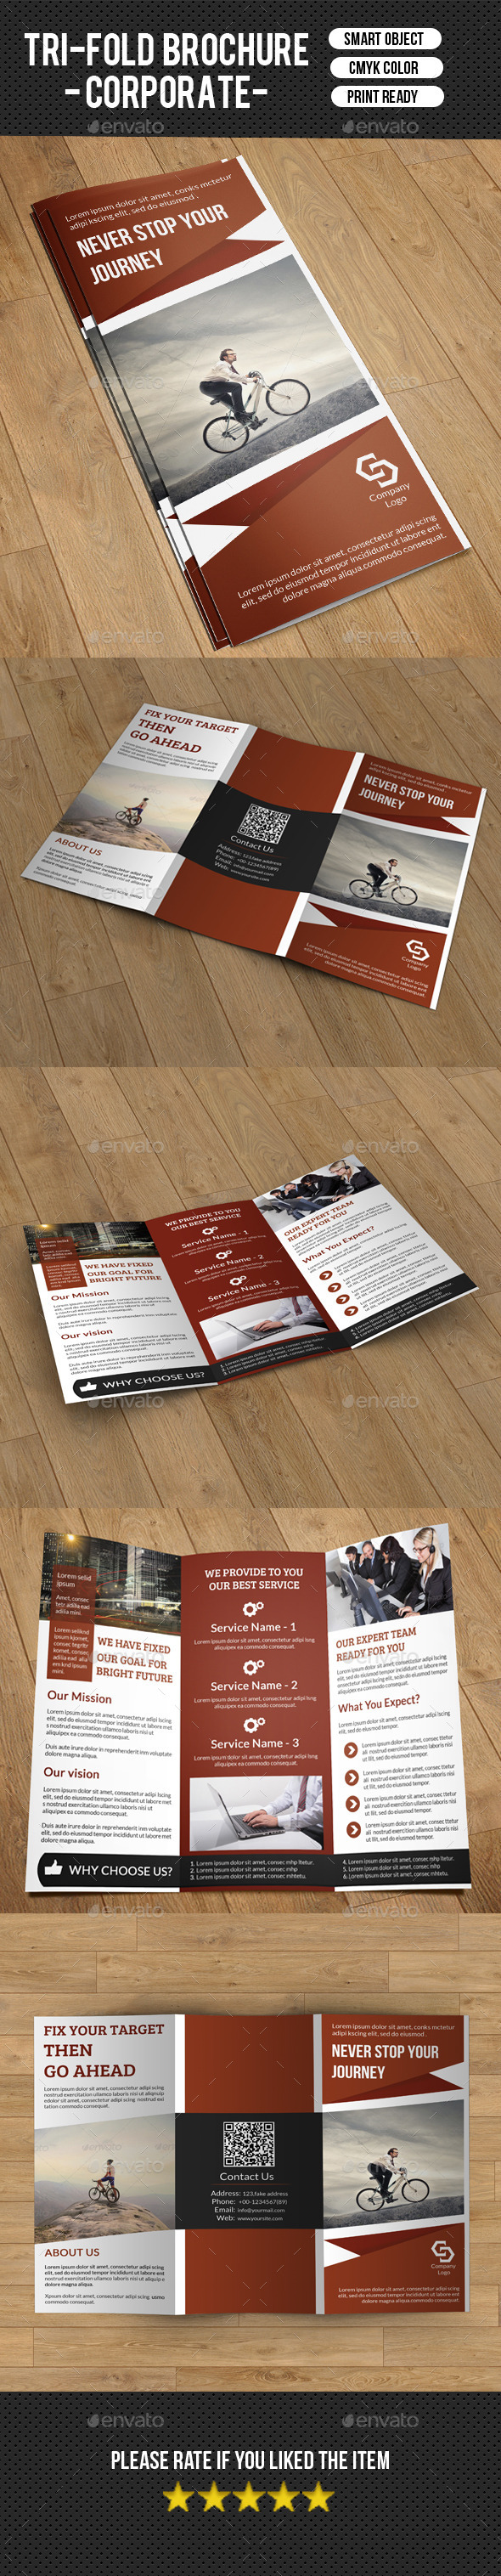 Trifold Business Brochure-V183 - Corporate Brochures